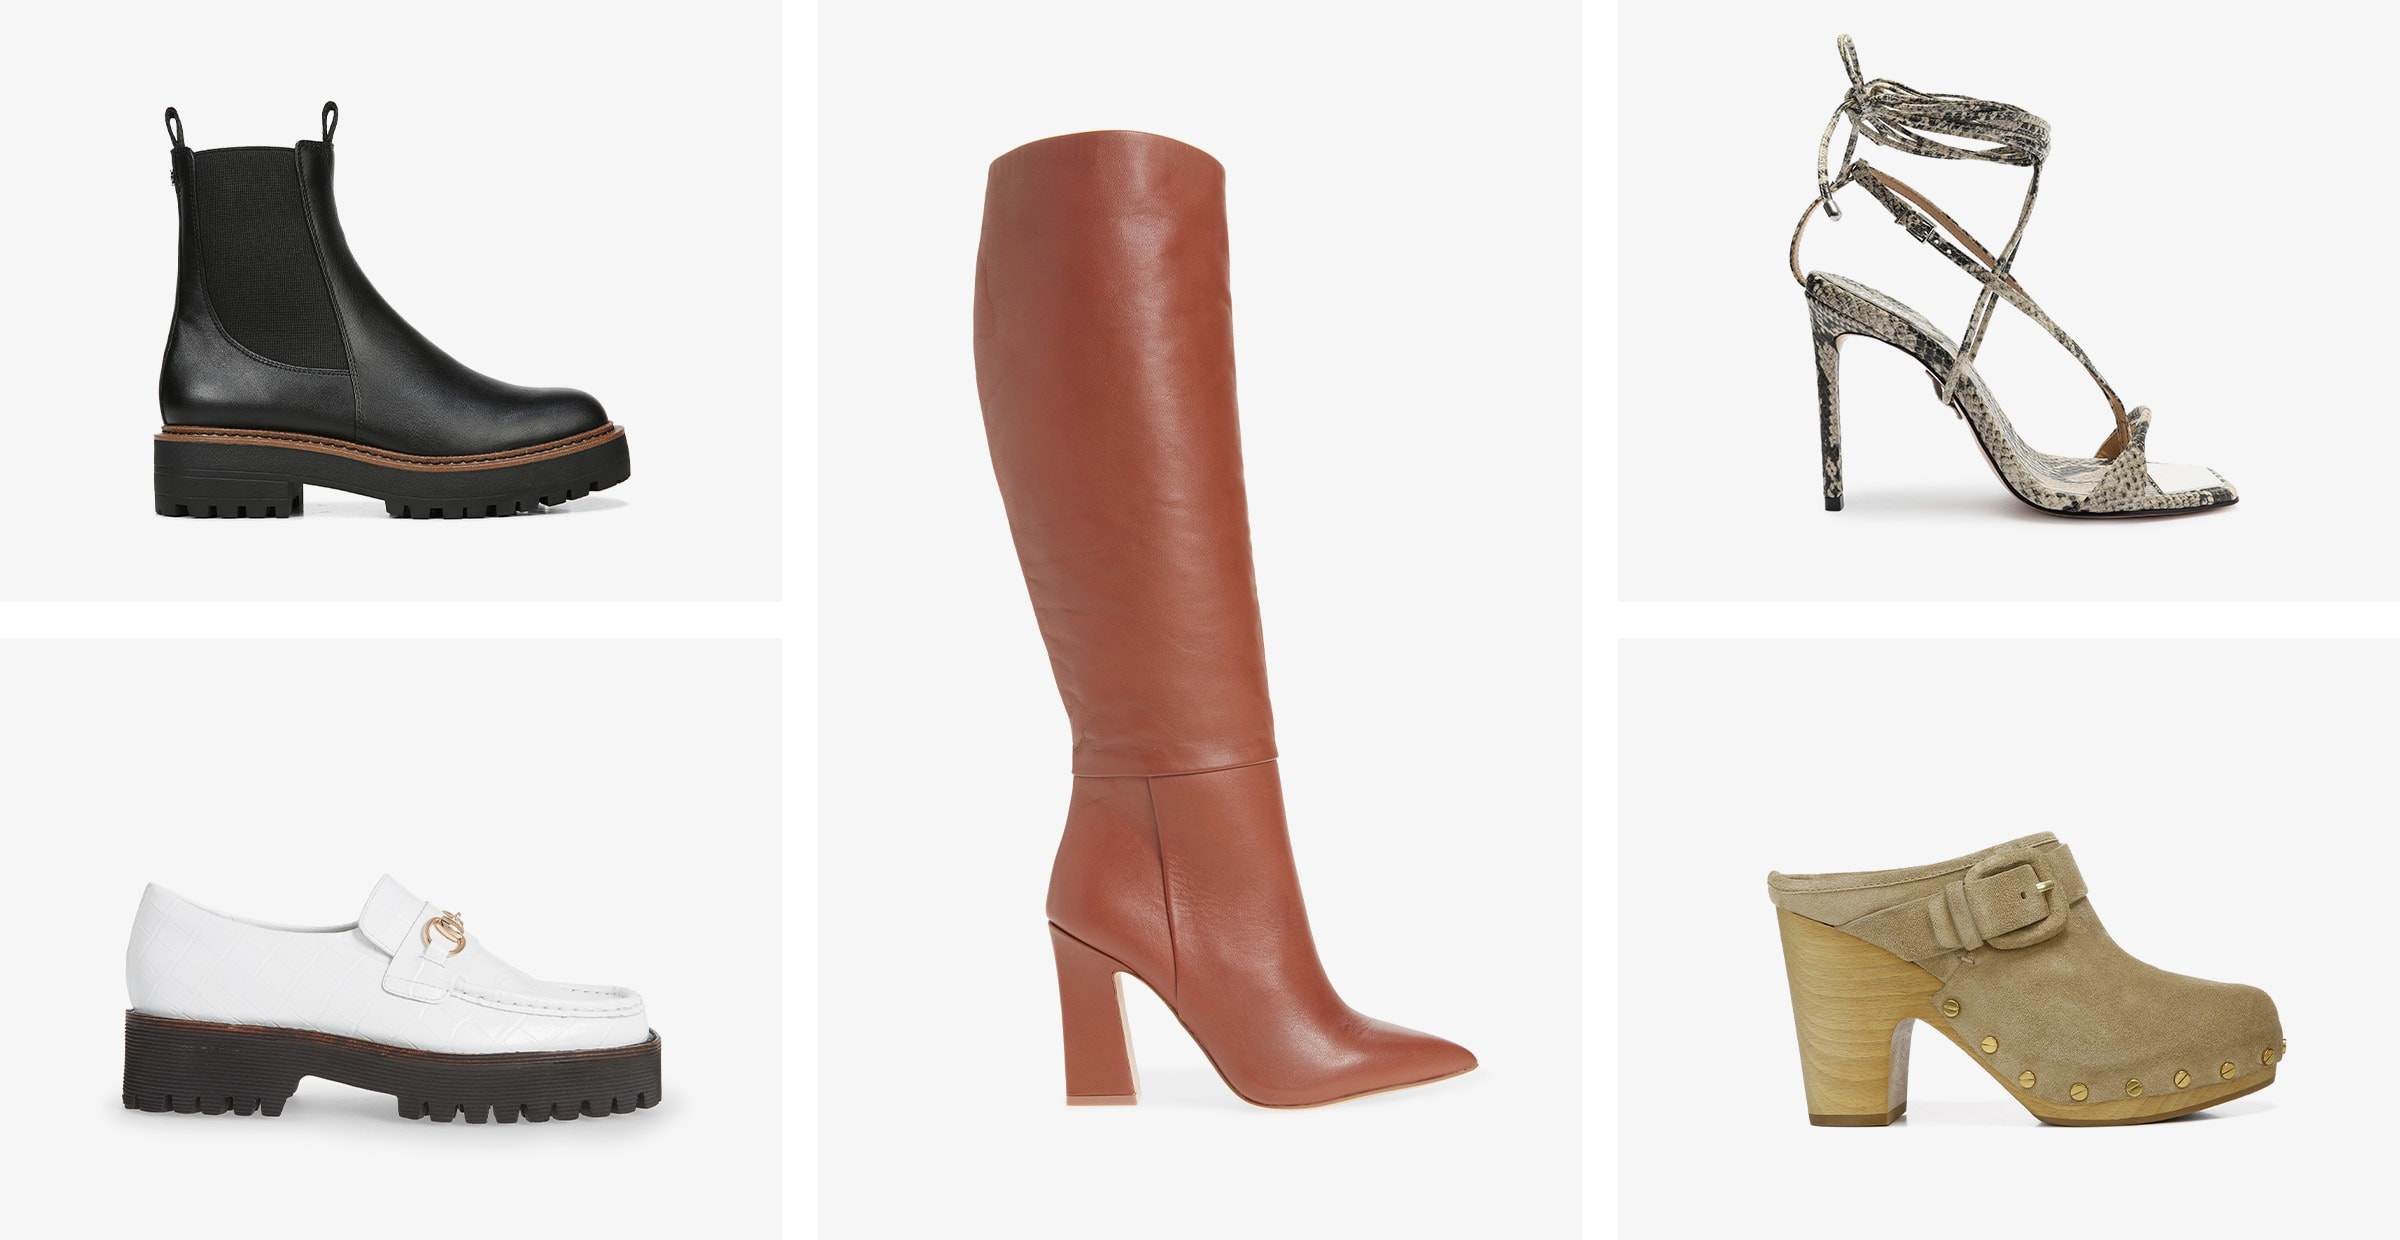 A black Chelsea boot, a white loafer, a brown boot, a snake-print stiletto with an ankle wrap and a tan clog.